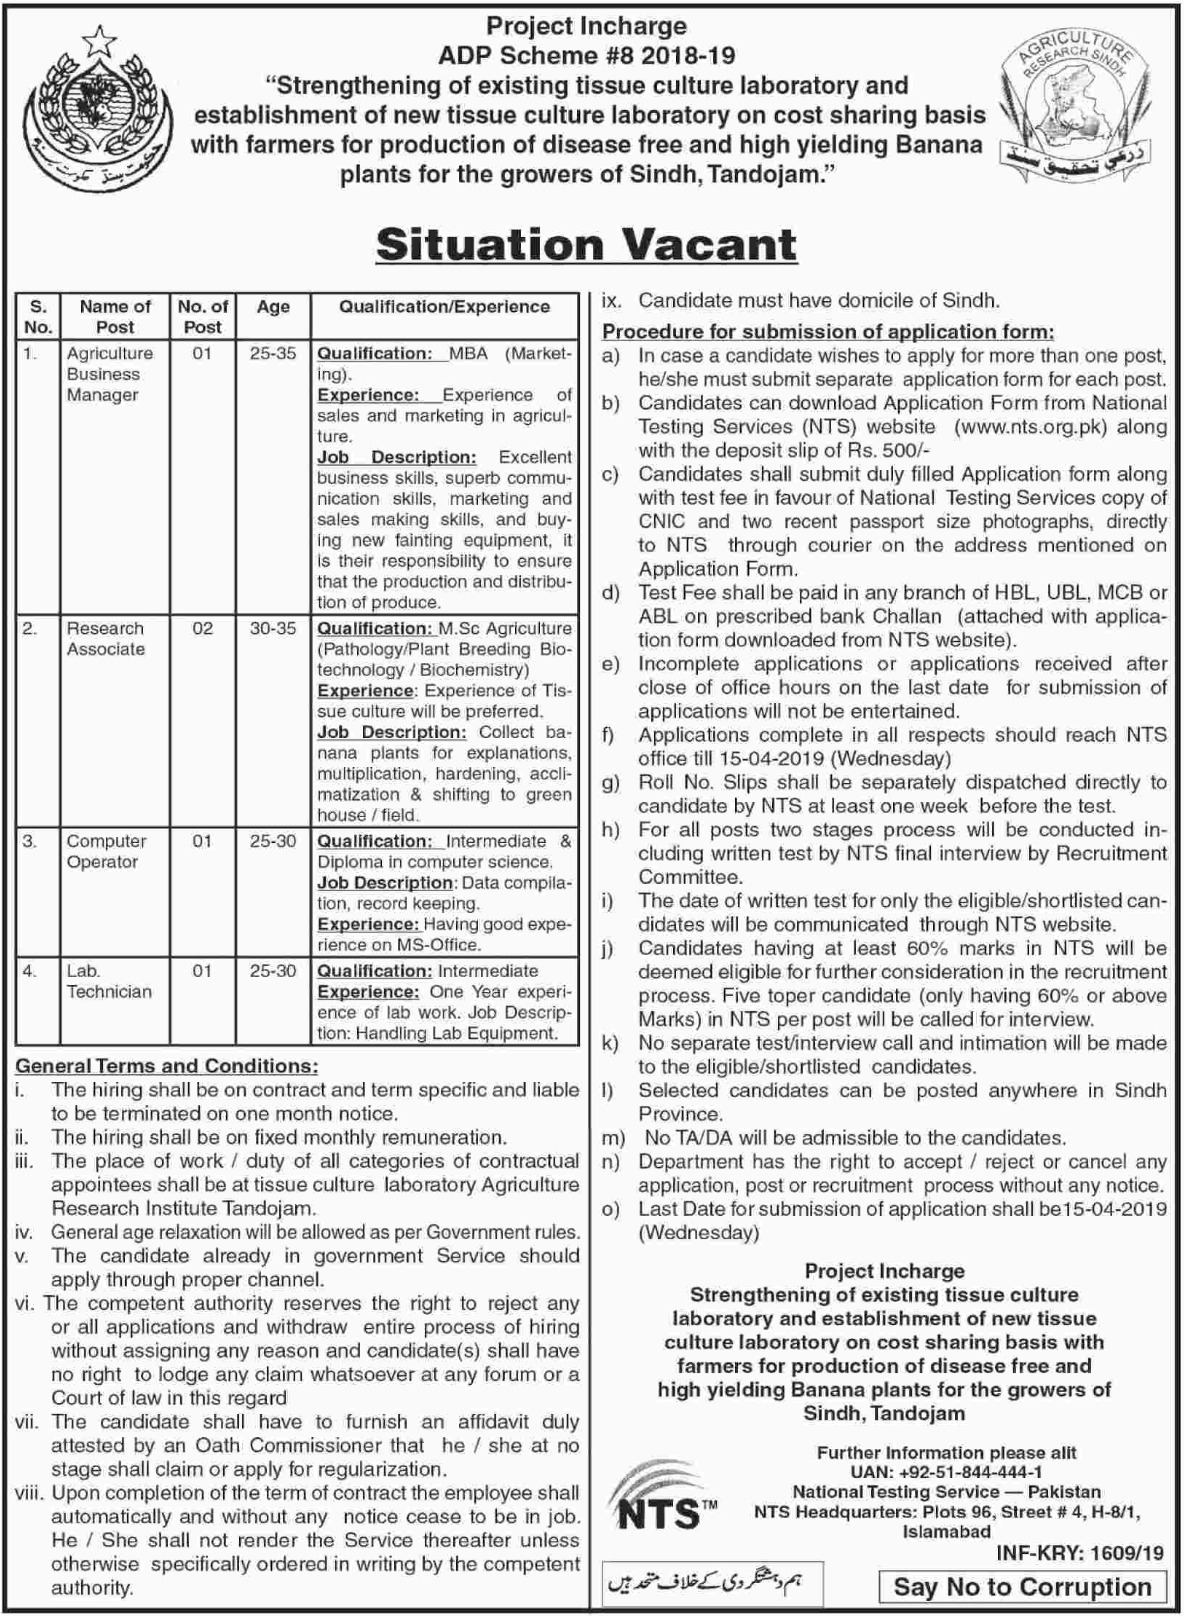 Sindh Agriculture Department Jobs 2019 Apply through nts.org.pk Latest